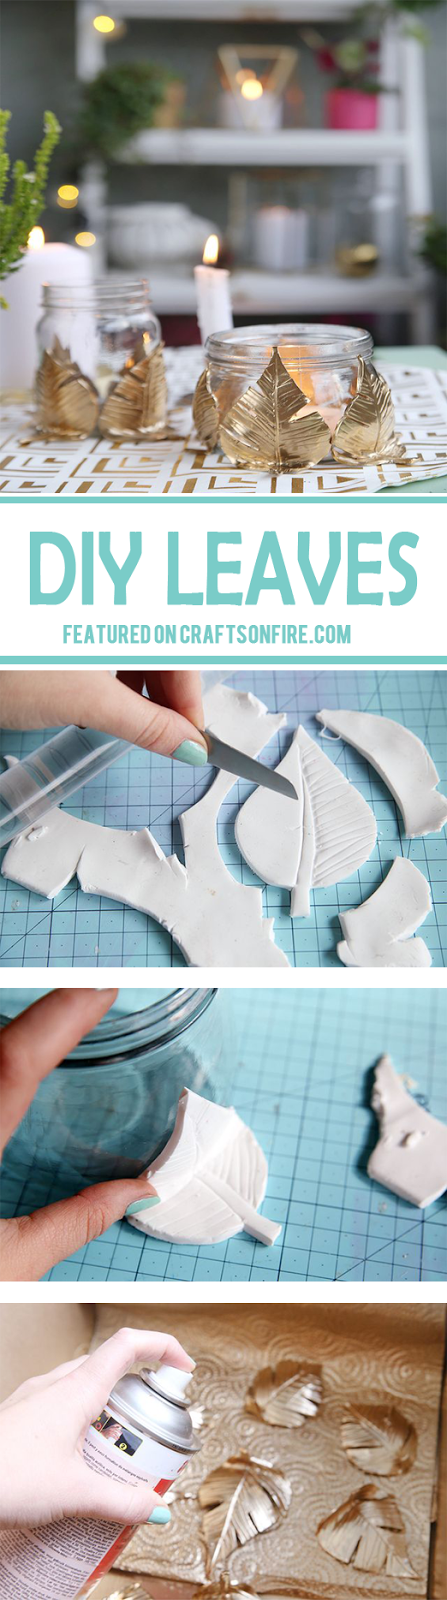 DIY, DIY Crafts, Diy Leaves, Diy Clay, Clay, Clay Leaves, Polymer Clay, Diy Tutorials, Clay Tutorials, Diy Home Decor, Decorations